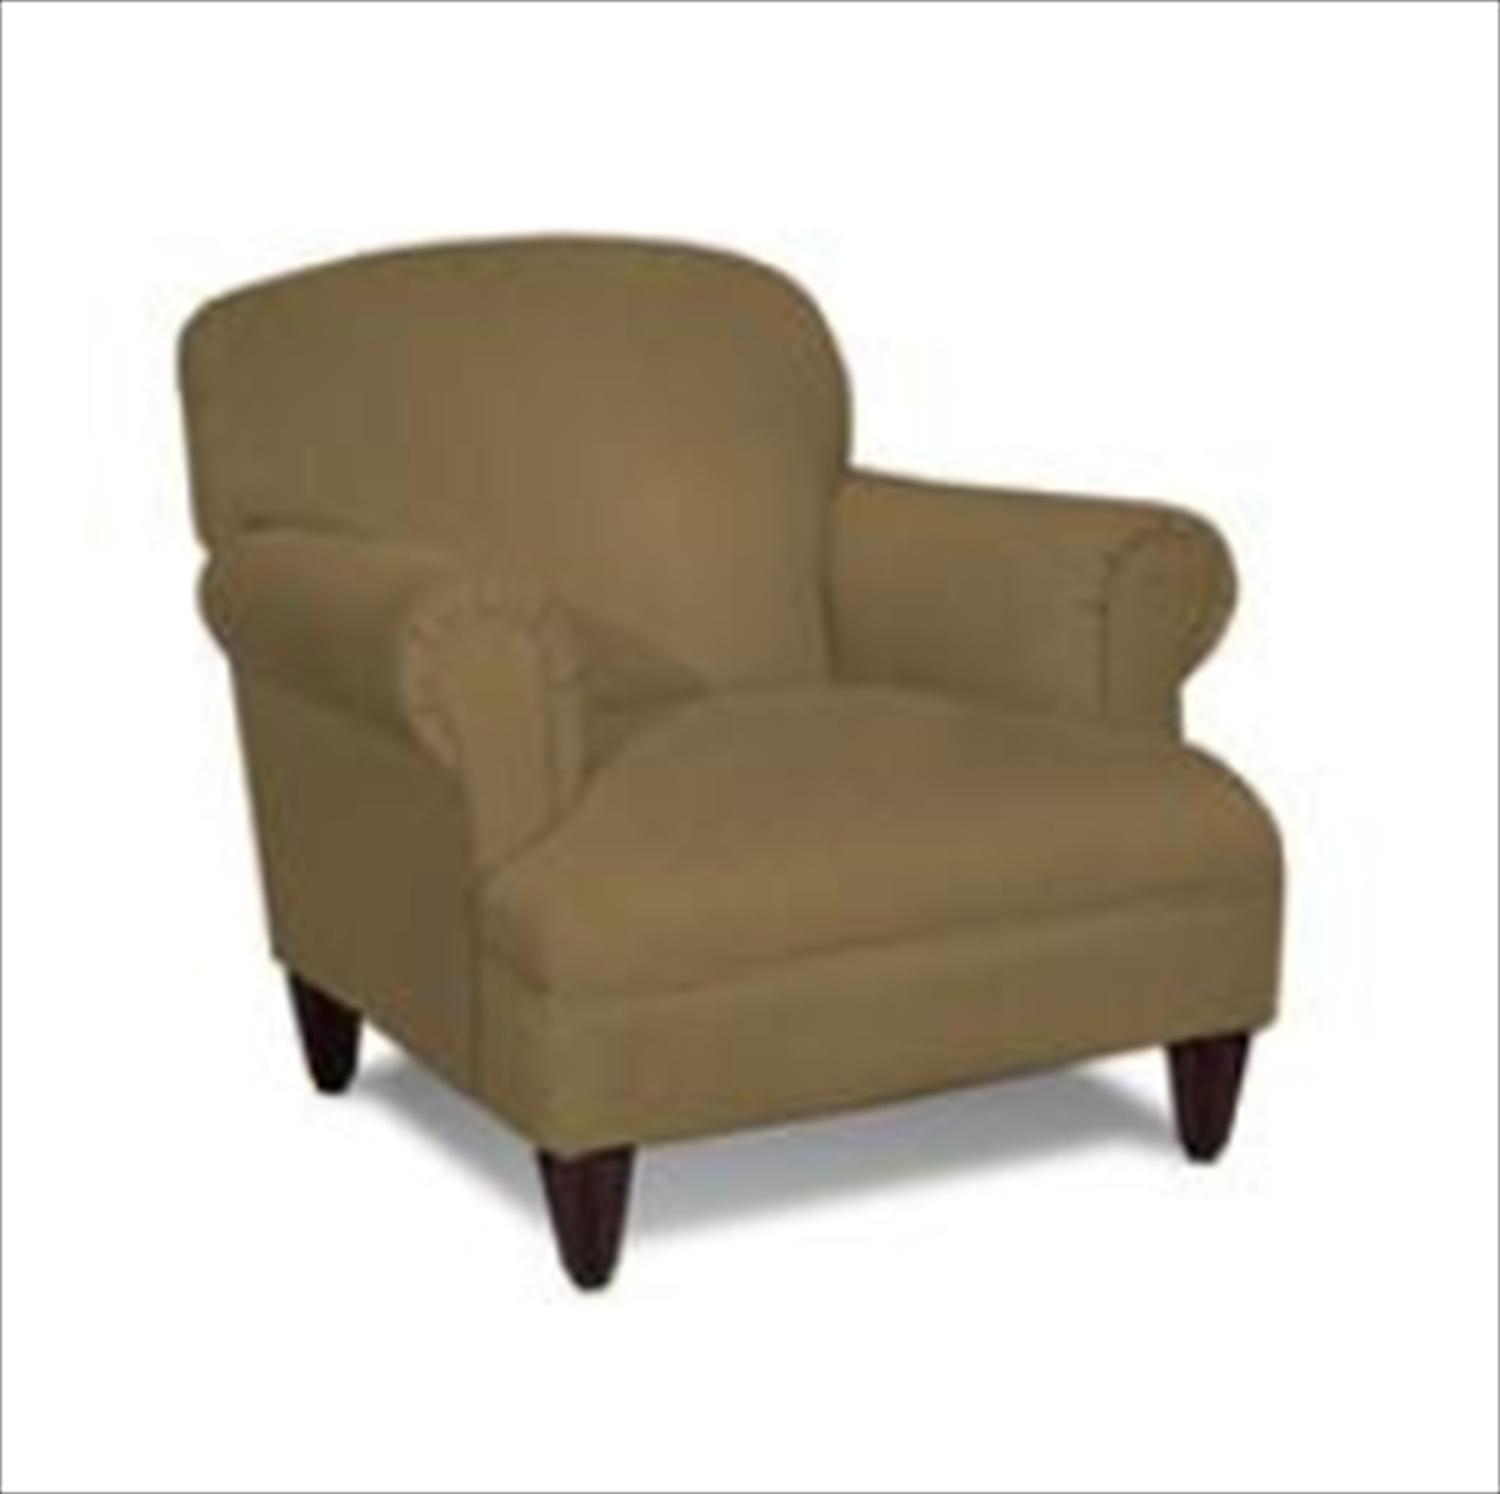 Klaussner Wrigley Chair - Belsire Honey